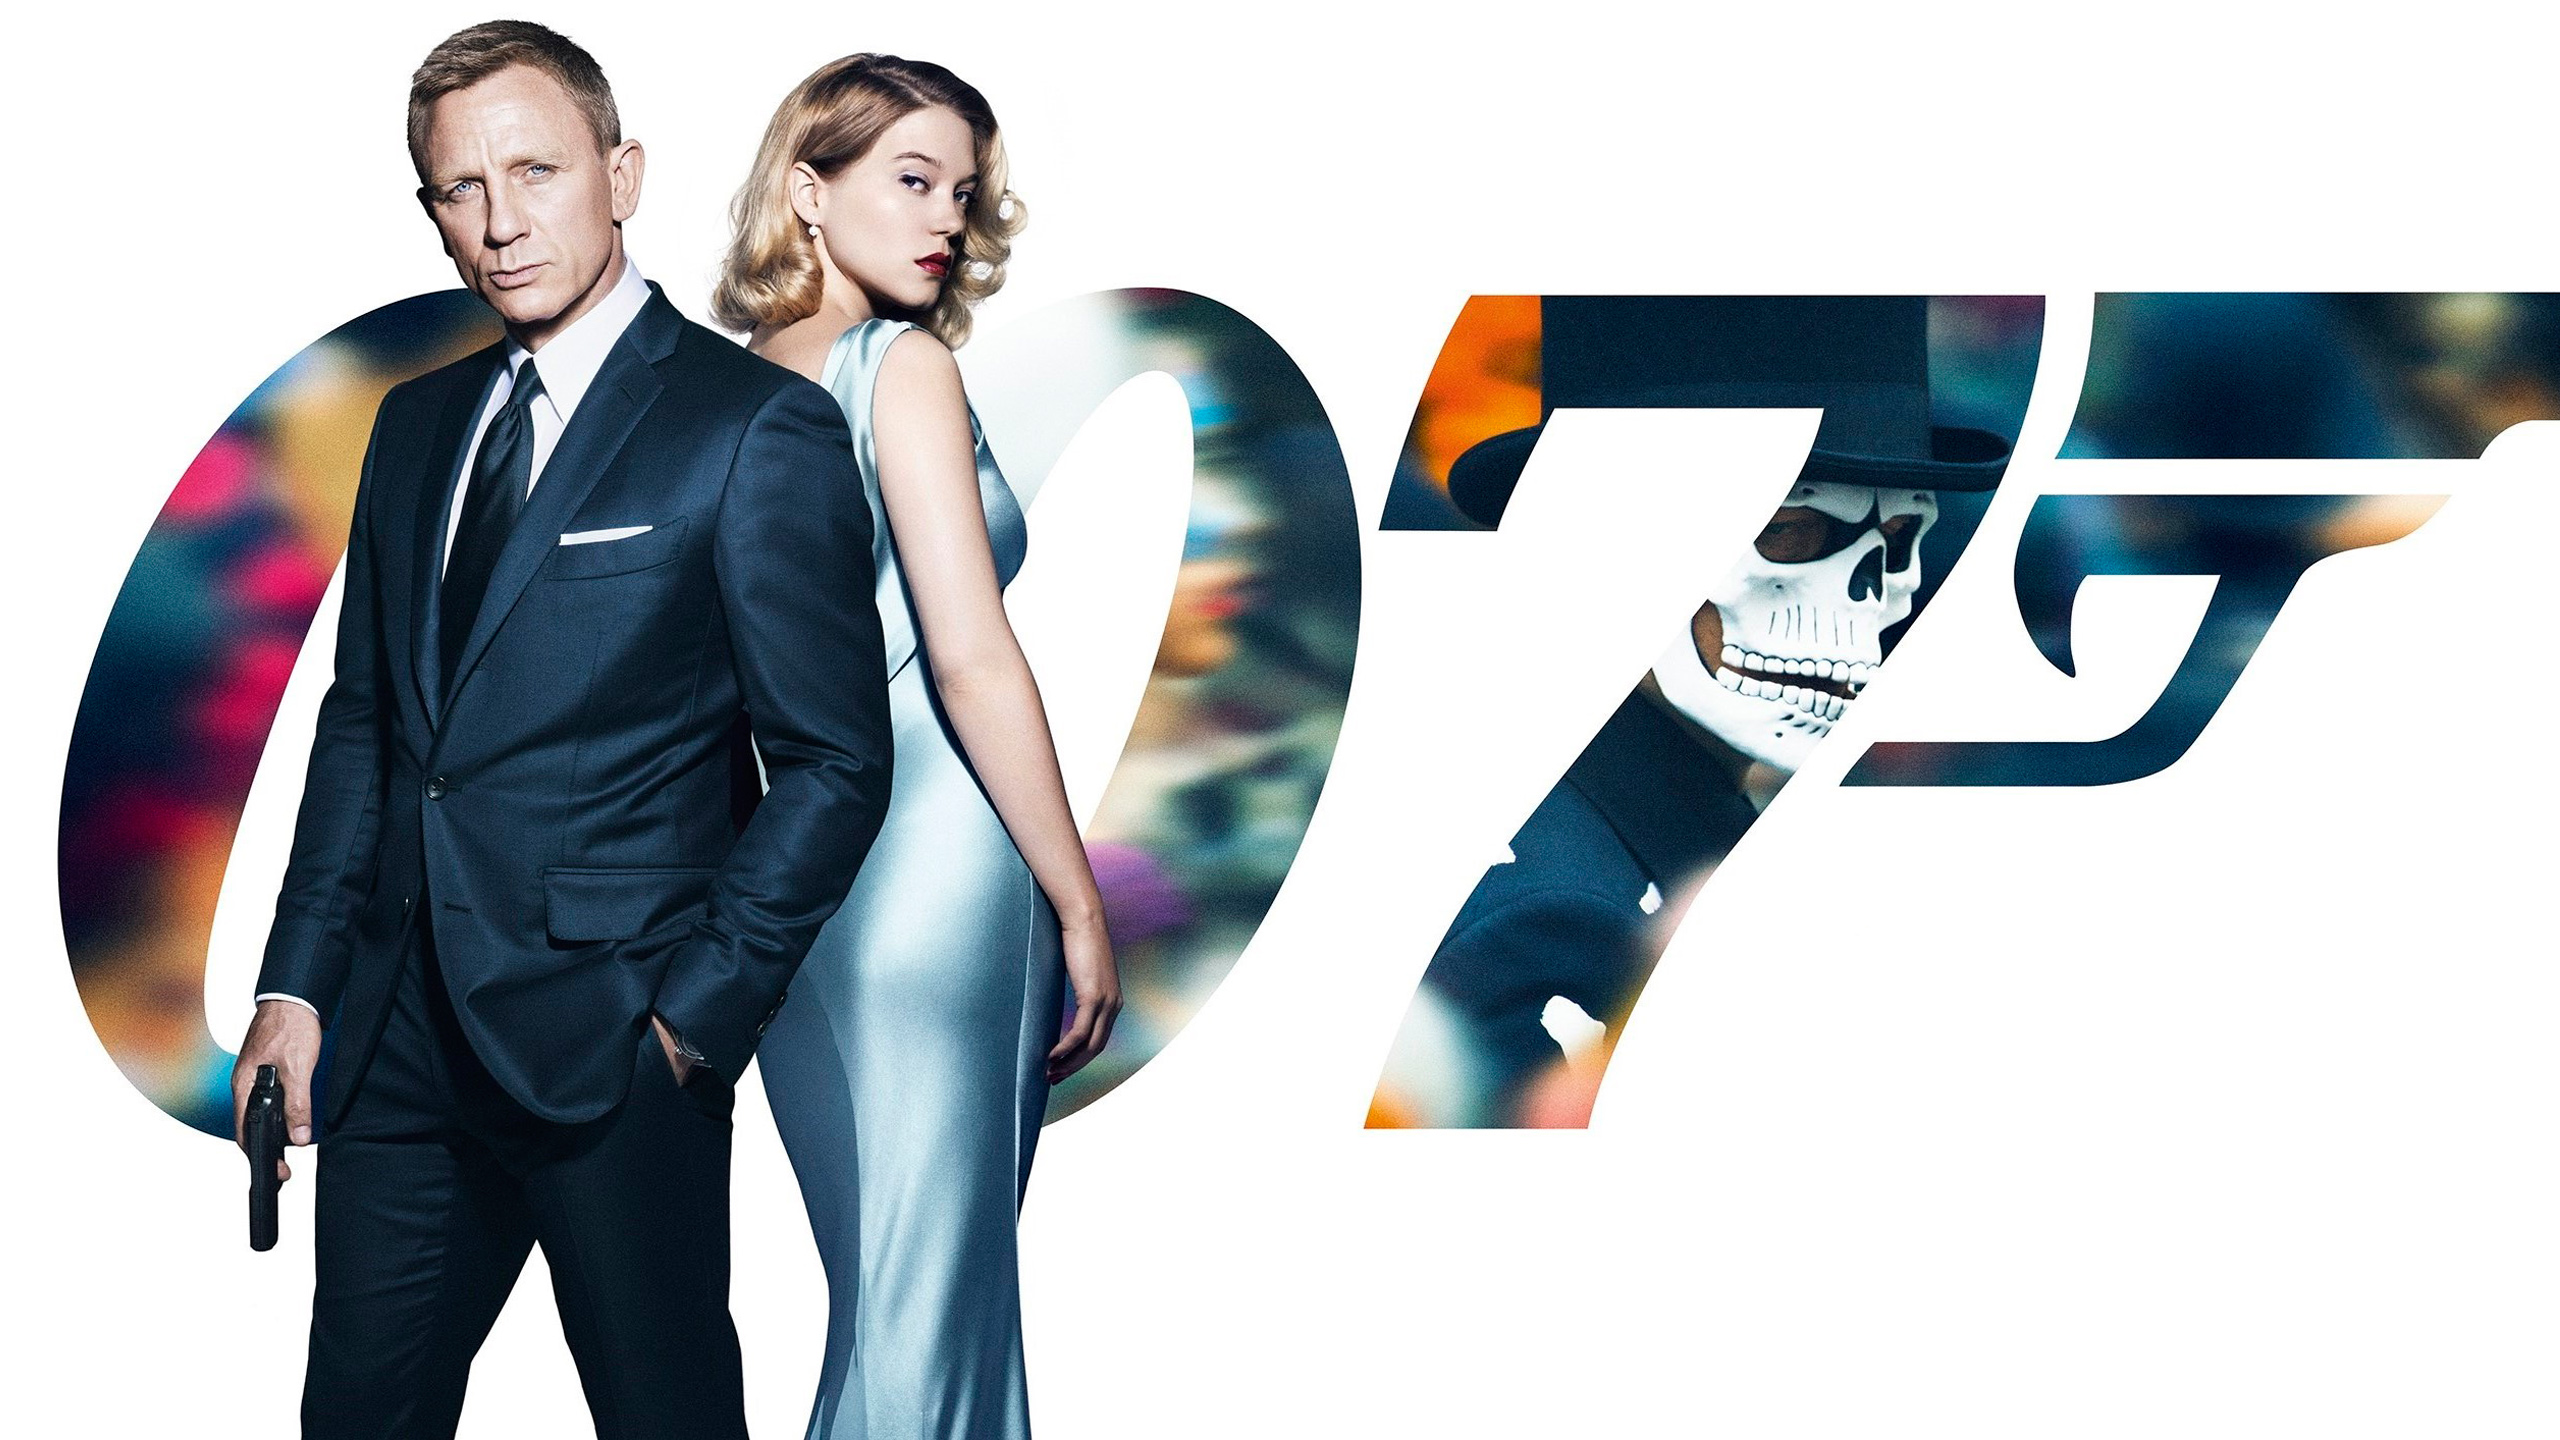 Spectre 2015 Bond Movie Wallpapers HD Wallpapers 2560x1440